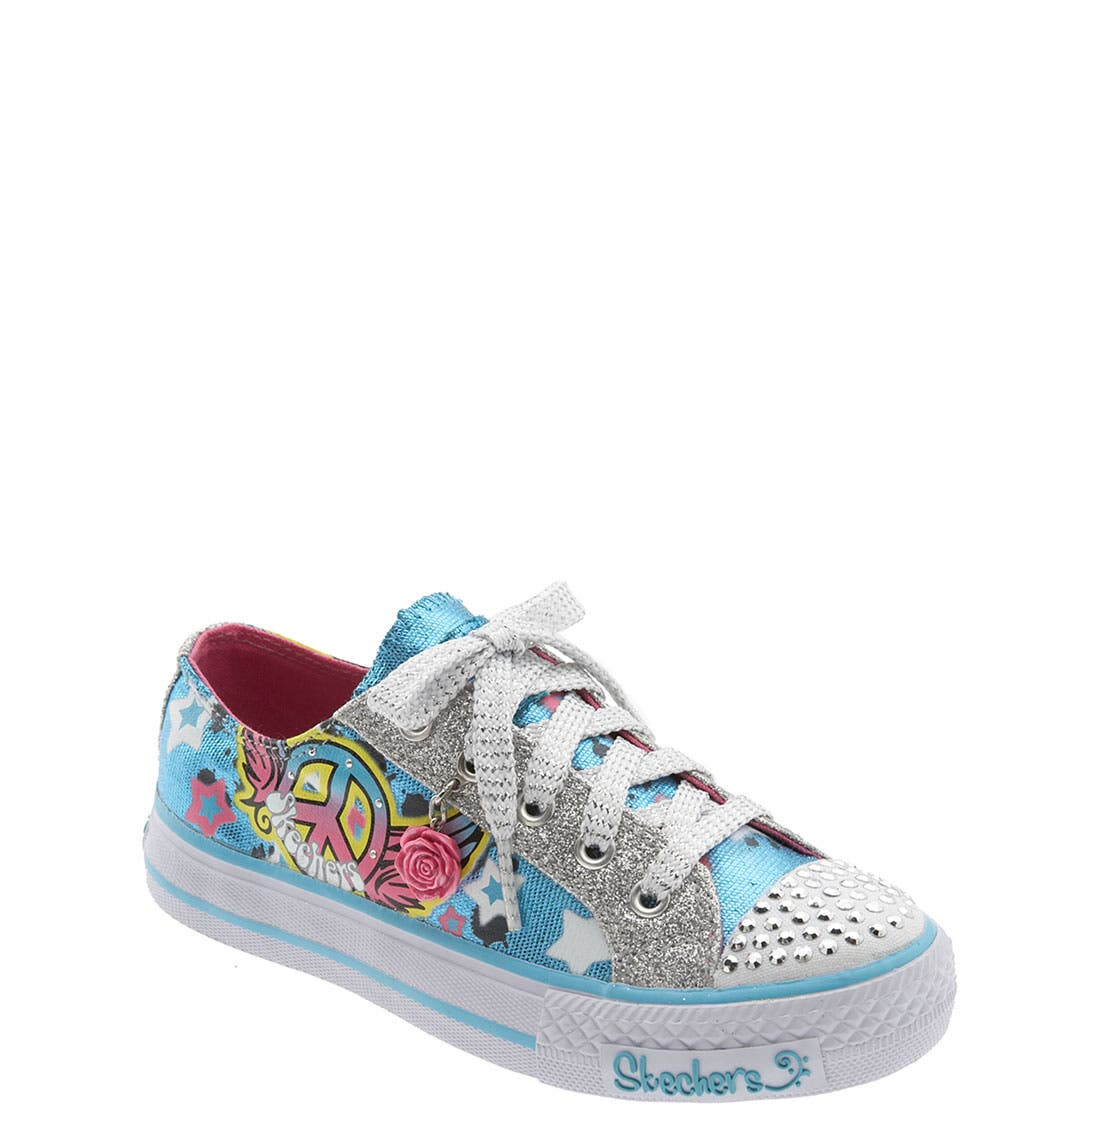 Alternate Image 1 Selected - SKECHERS 'Shuffles - Free Fall' Sneaker (Toddler, Little Kid & Big Kid)